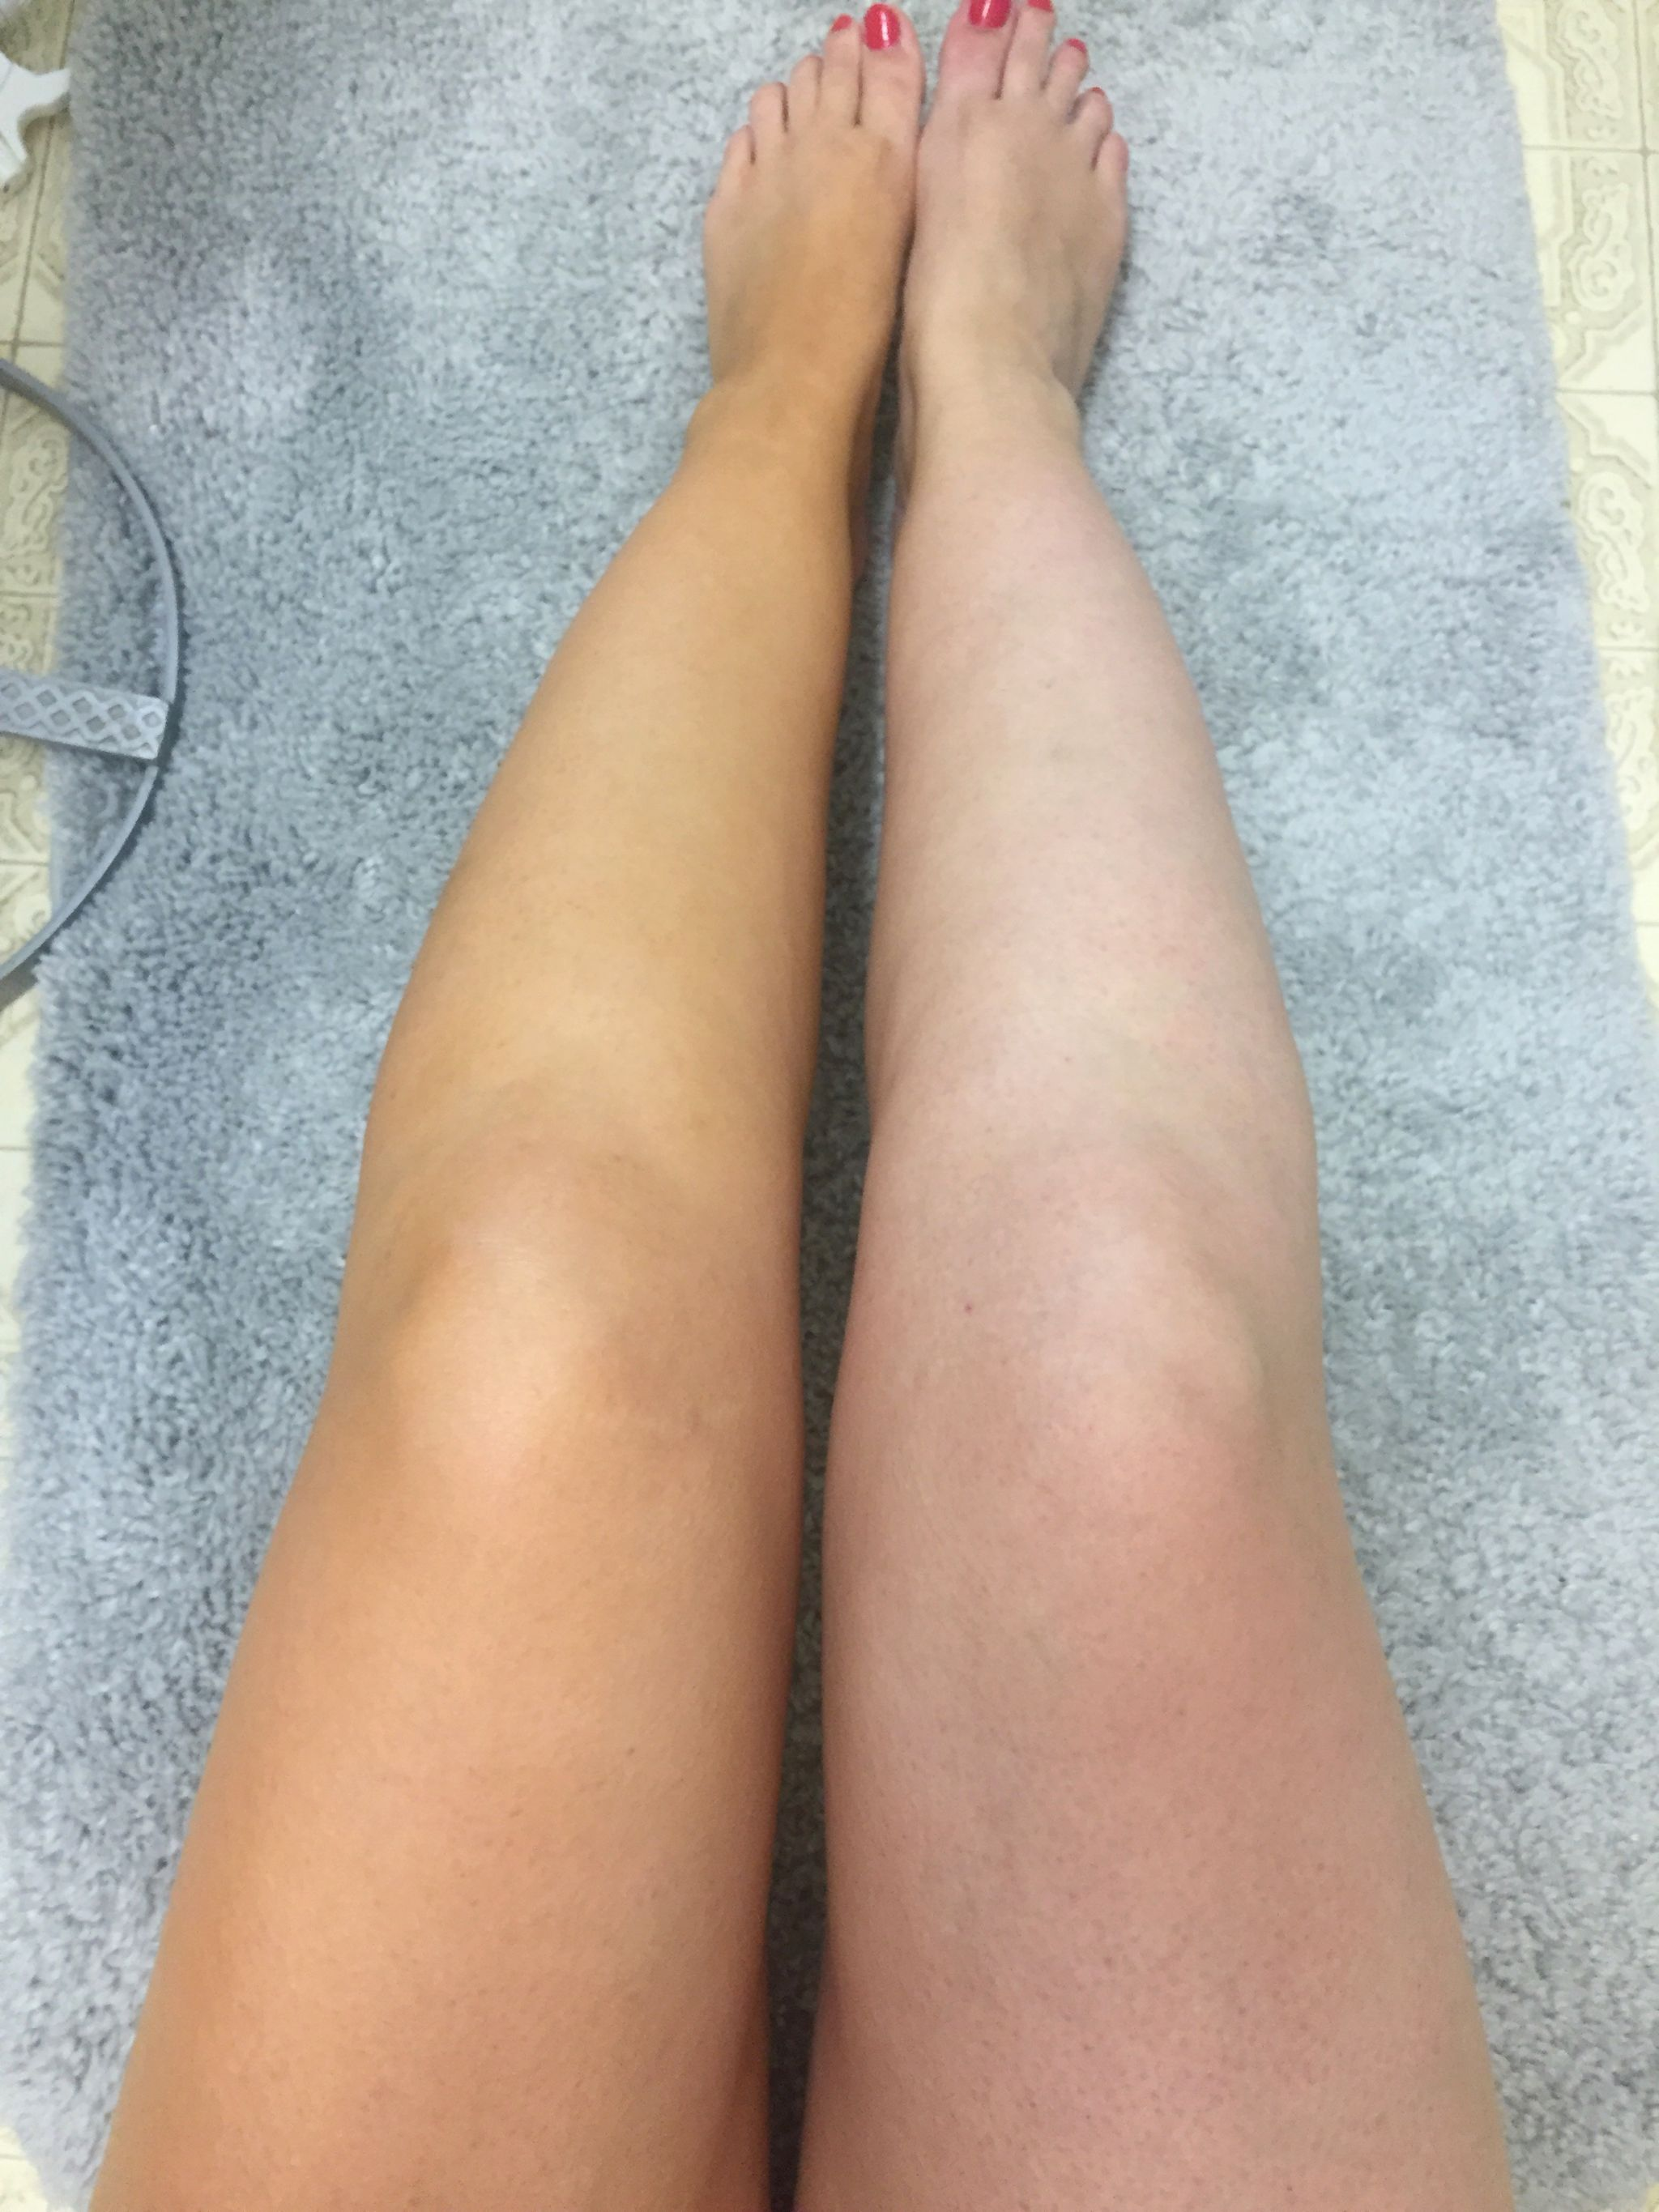 Sally Hansen Airbrush Legs Before And After A Review Of This Leg Makeup